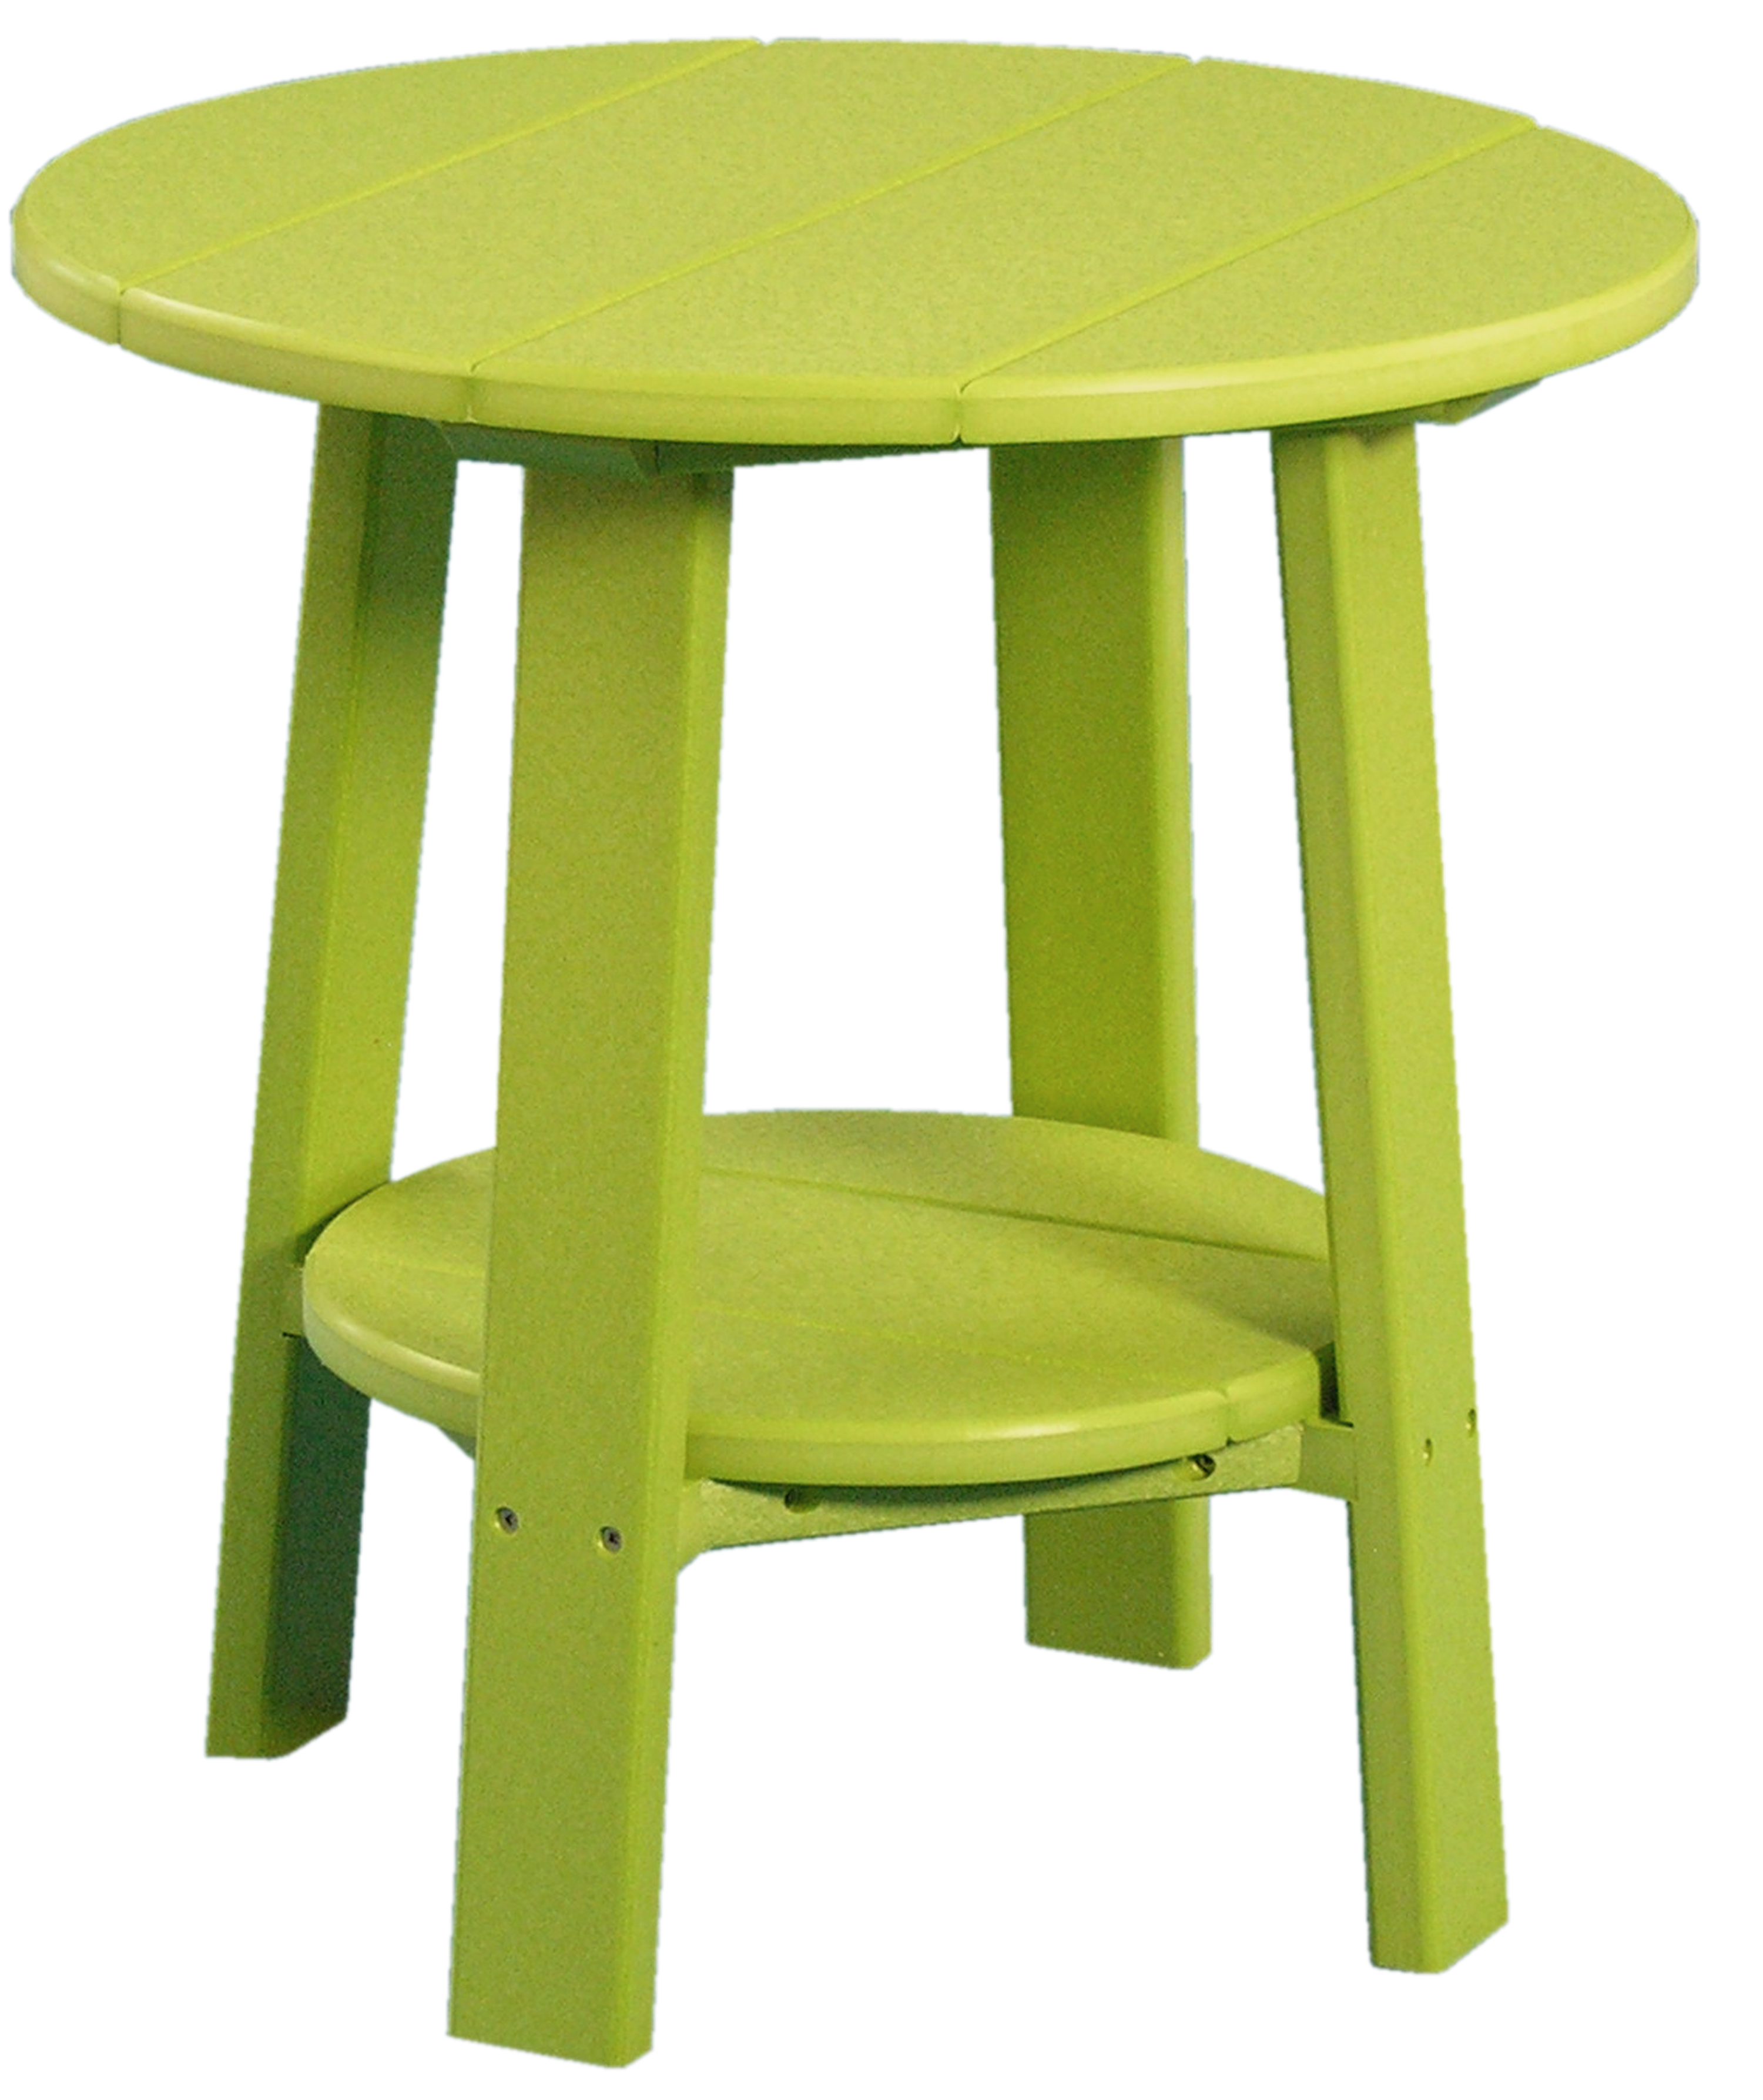 side tables amish merchant deluxe end table all lime green accent mirrored console dale tiffany dragonfly lamp target coffee with storage inexpensive legs mahogany long shelves